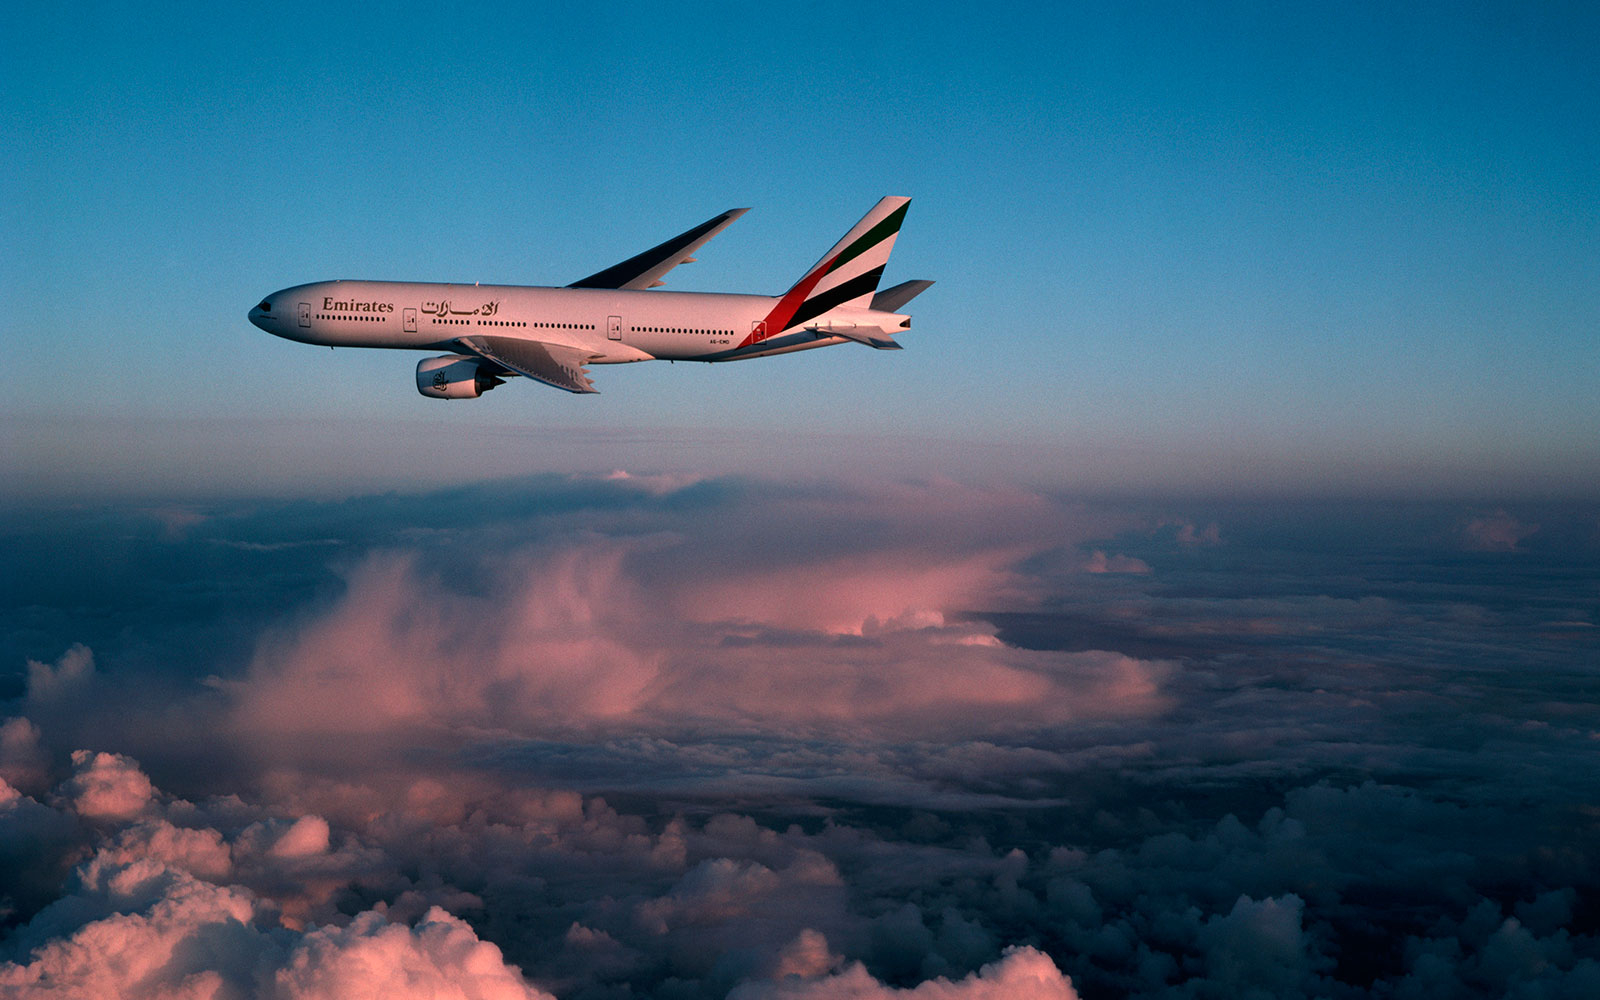 EMIRATES0815-longest-flight.jpg